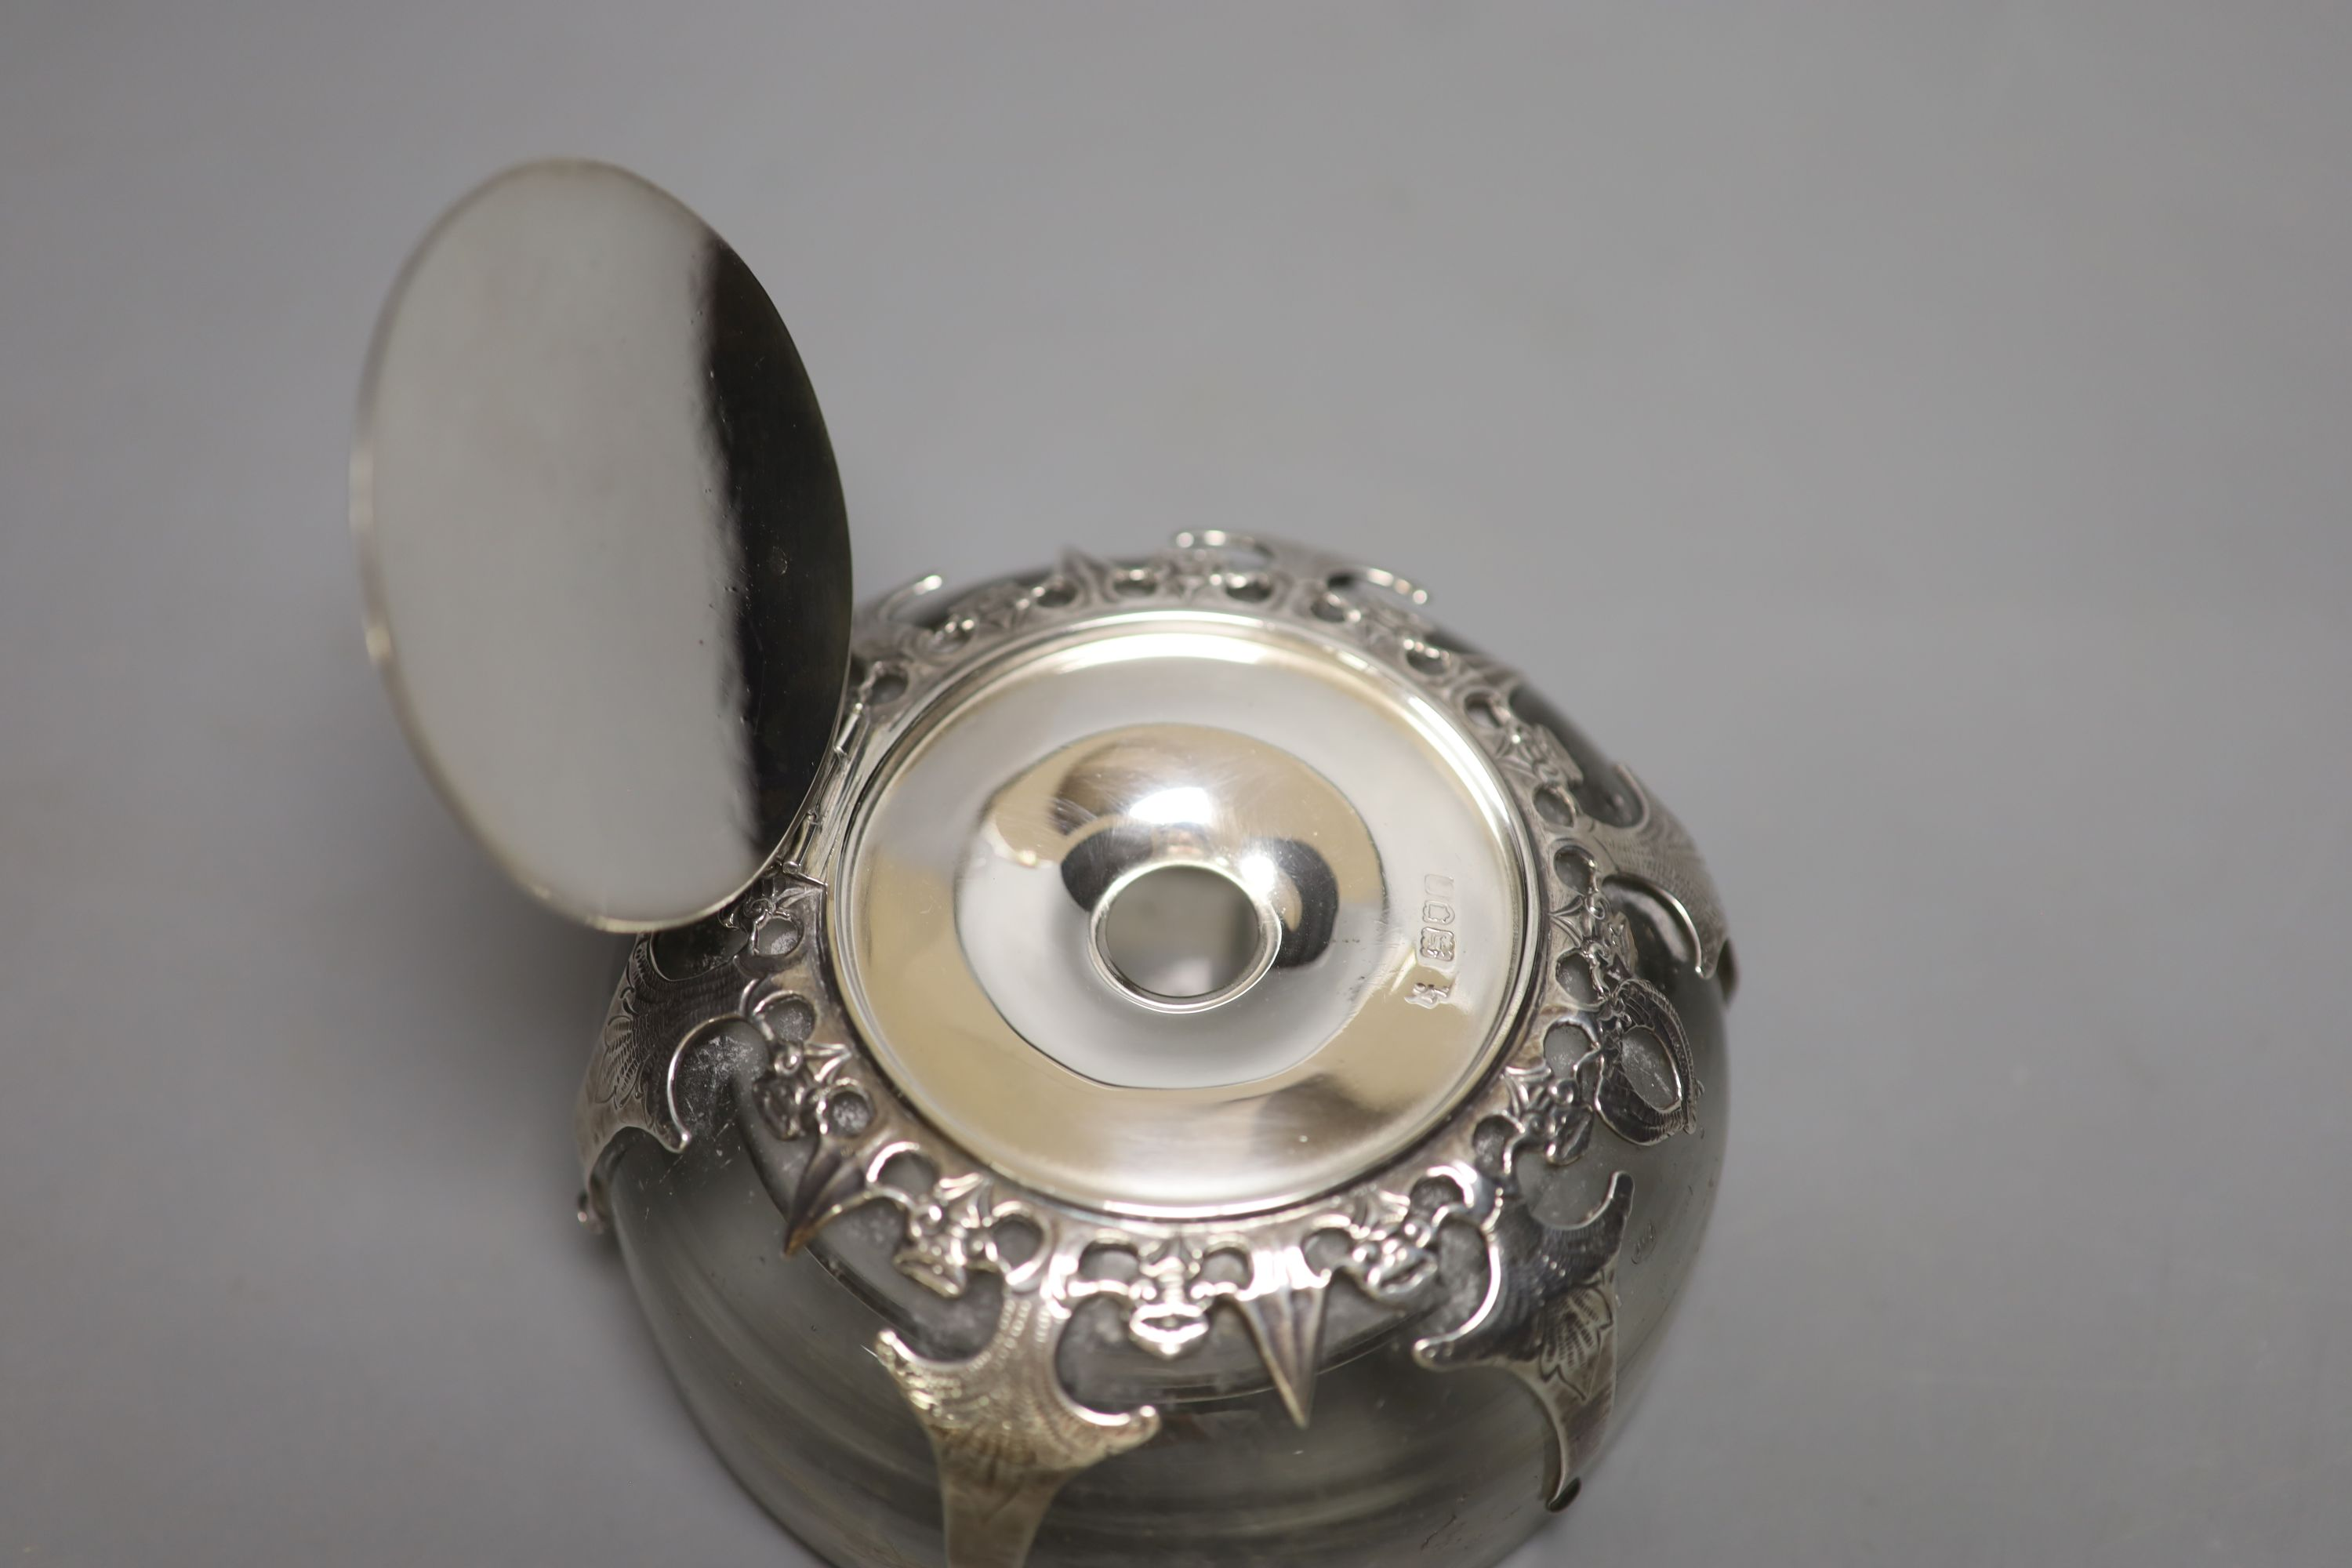 An Edwardian silver mounted domed glass inkwell, London, 1901, base diameter 12.3cm. - Image 3 of 4